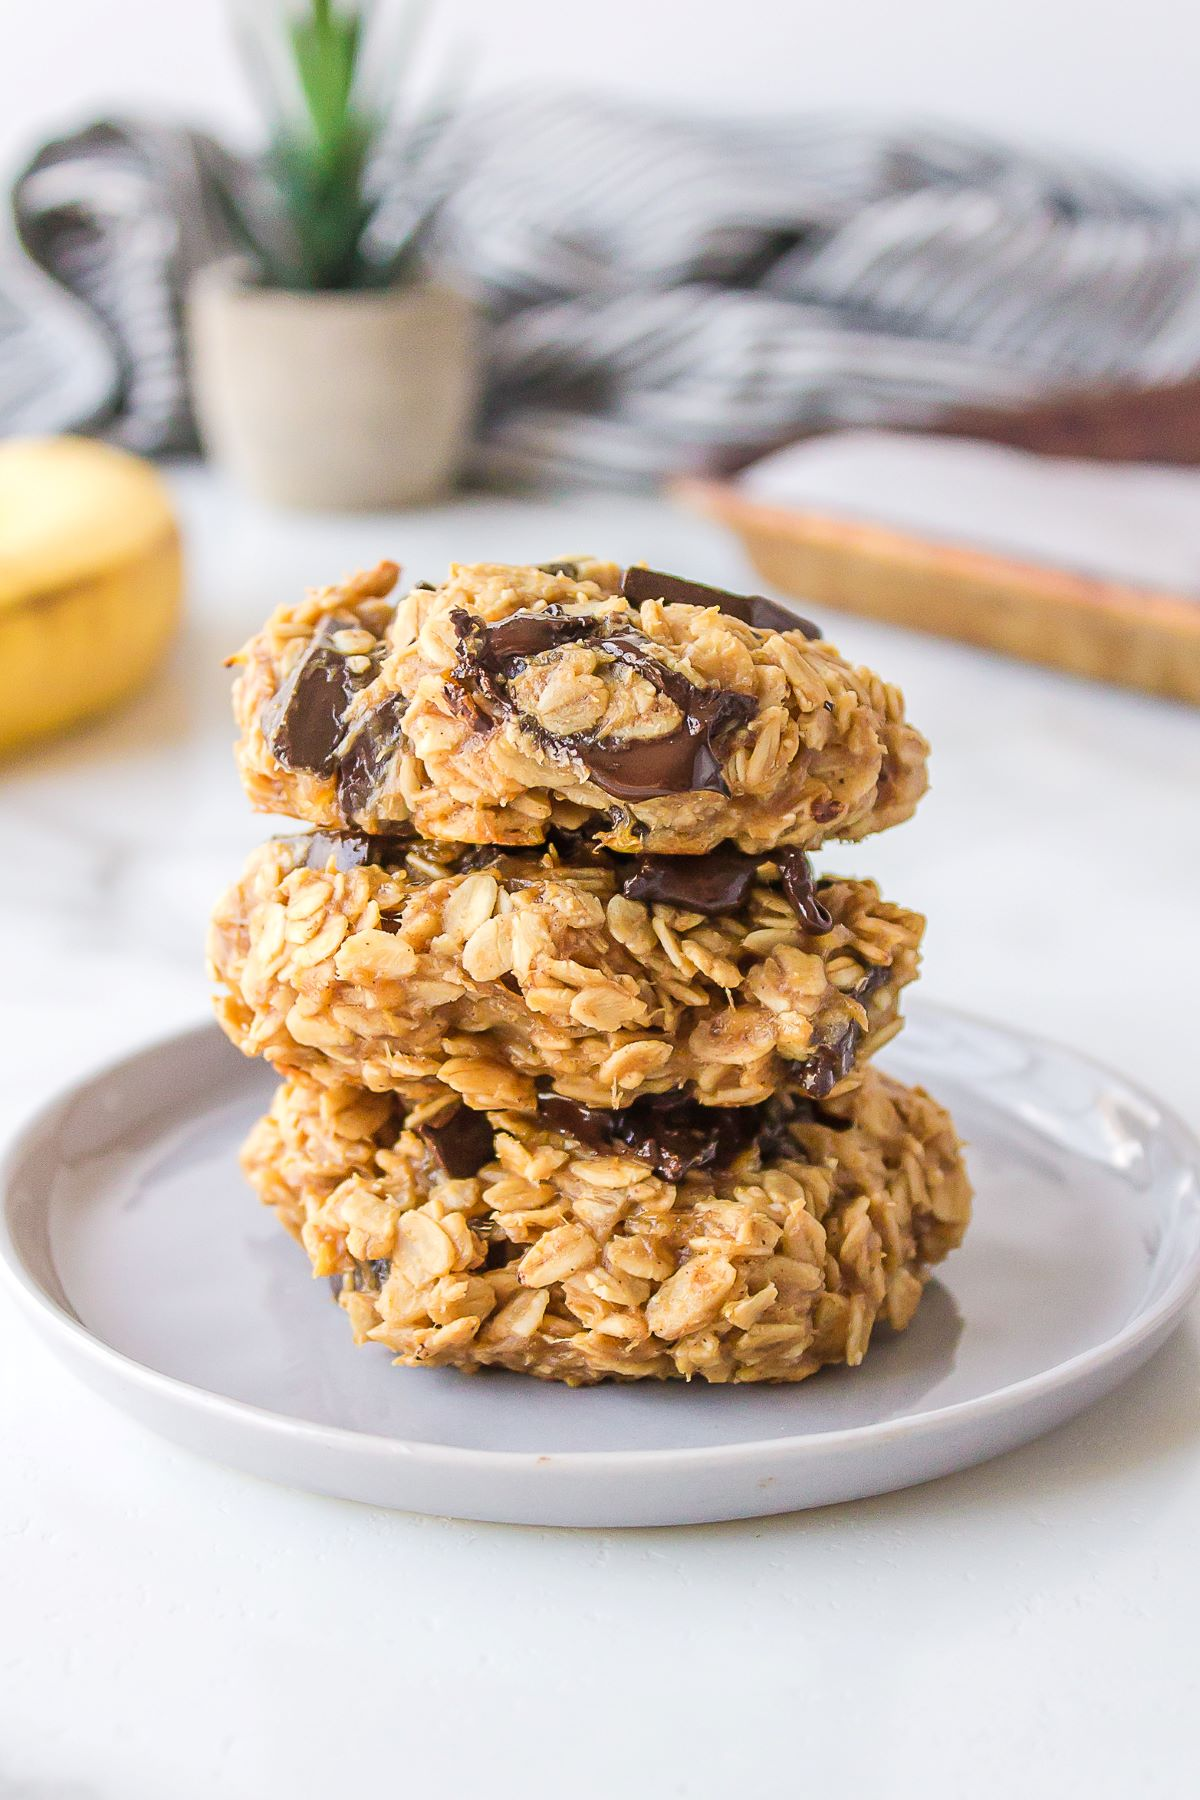 A stack of three breakfast cookies on a plate.